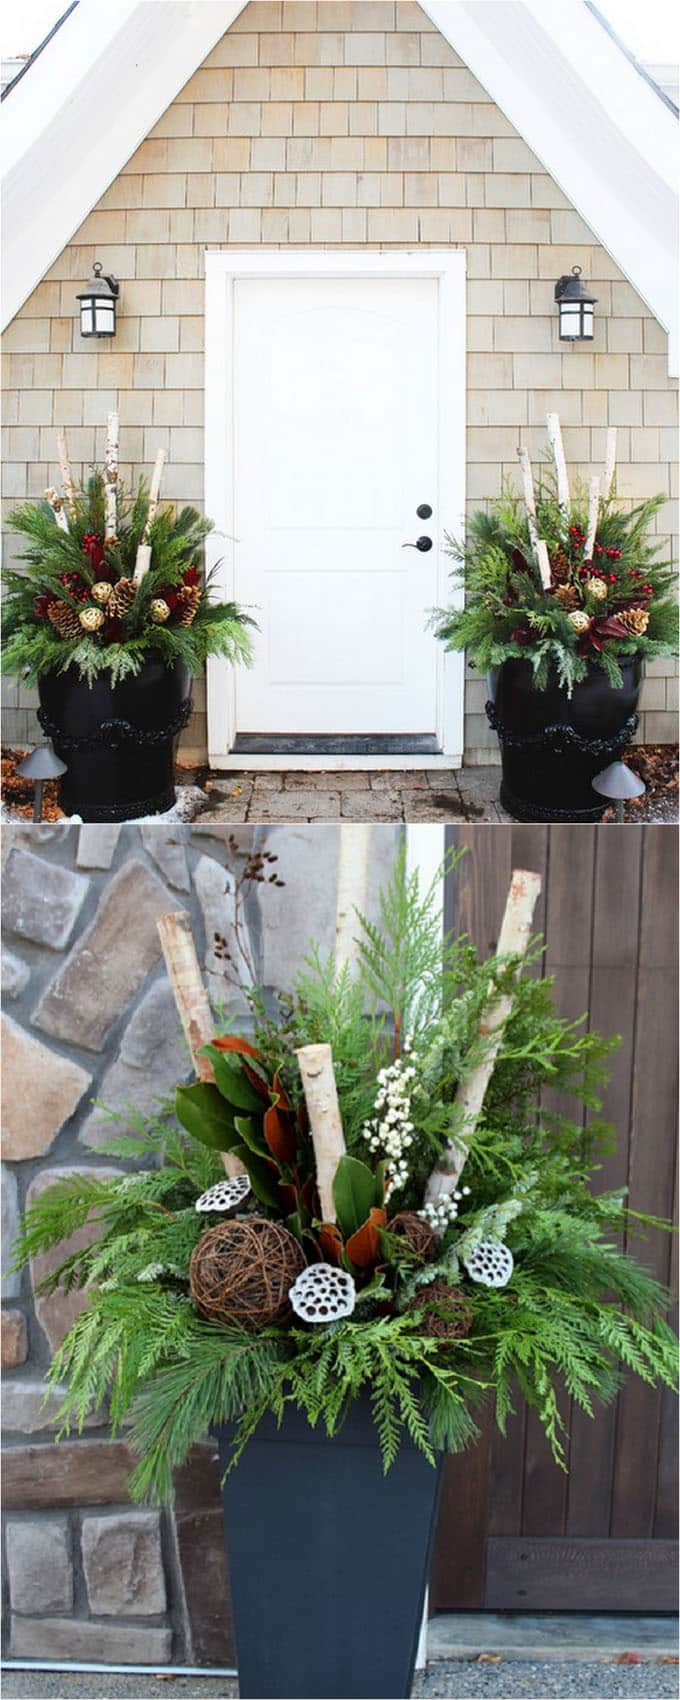 24 Stunning Christmas Pots And Planters To Diy For Almost Free How Create Colorful